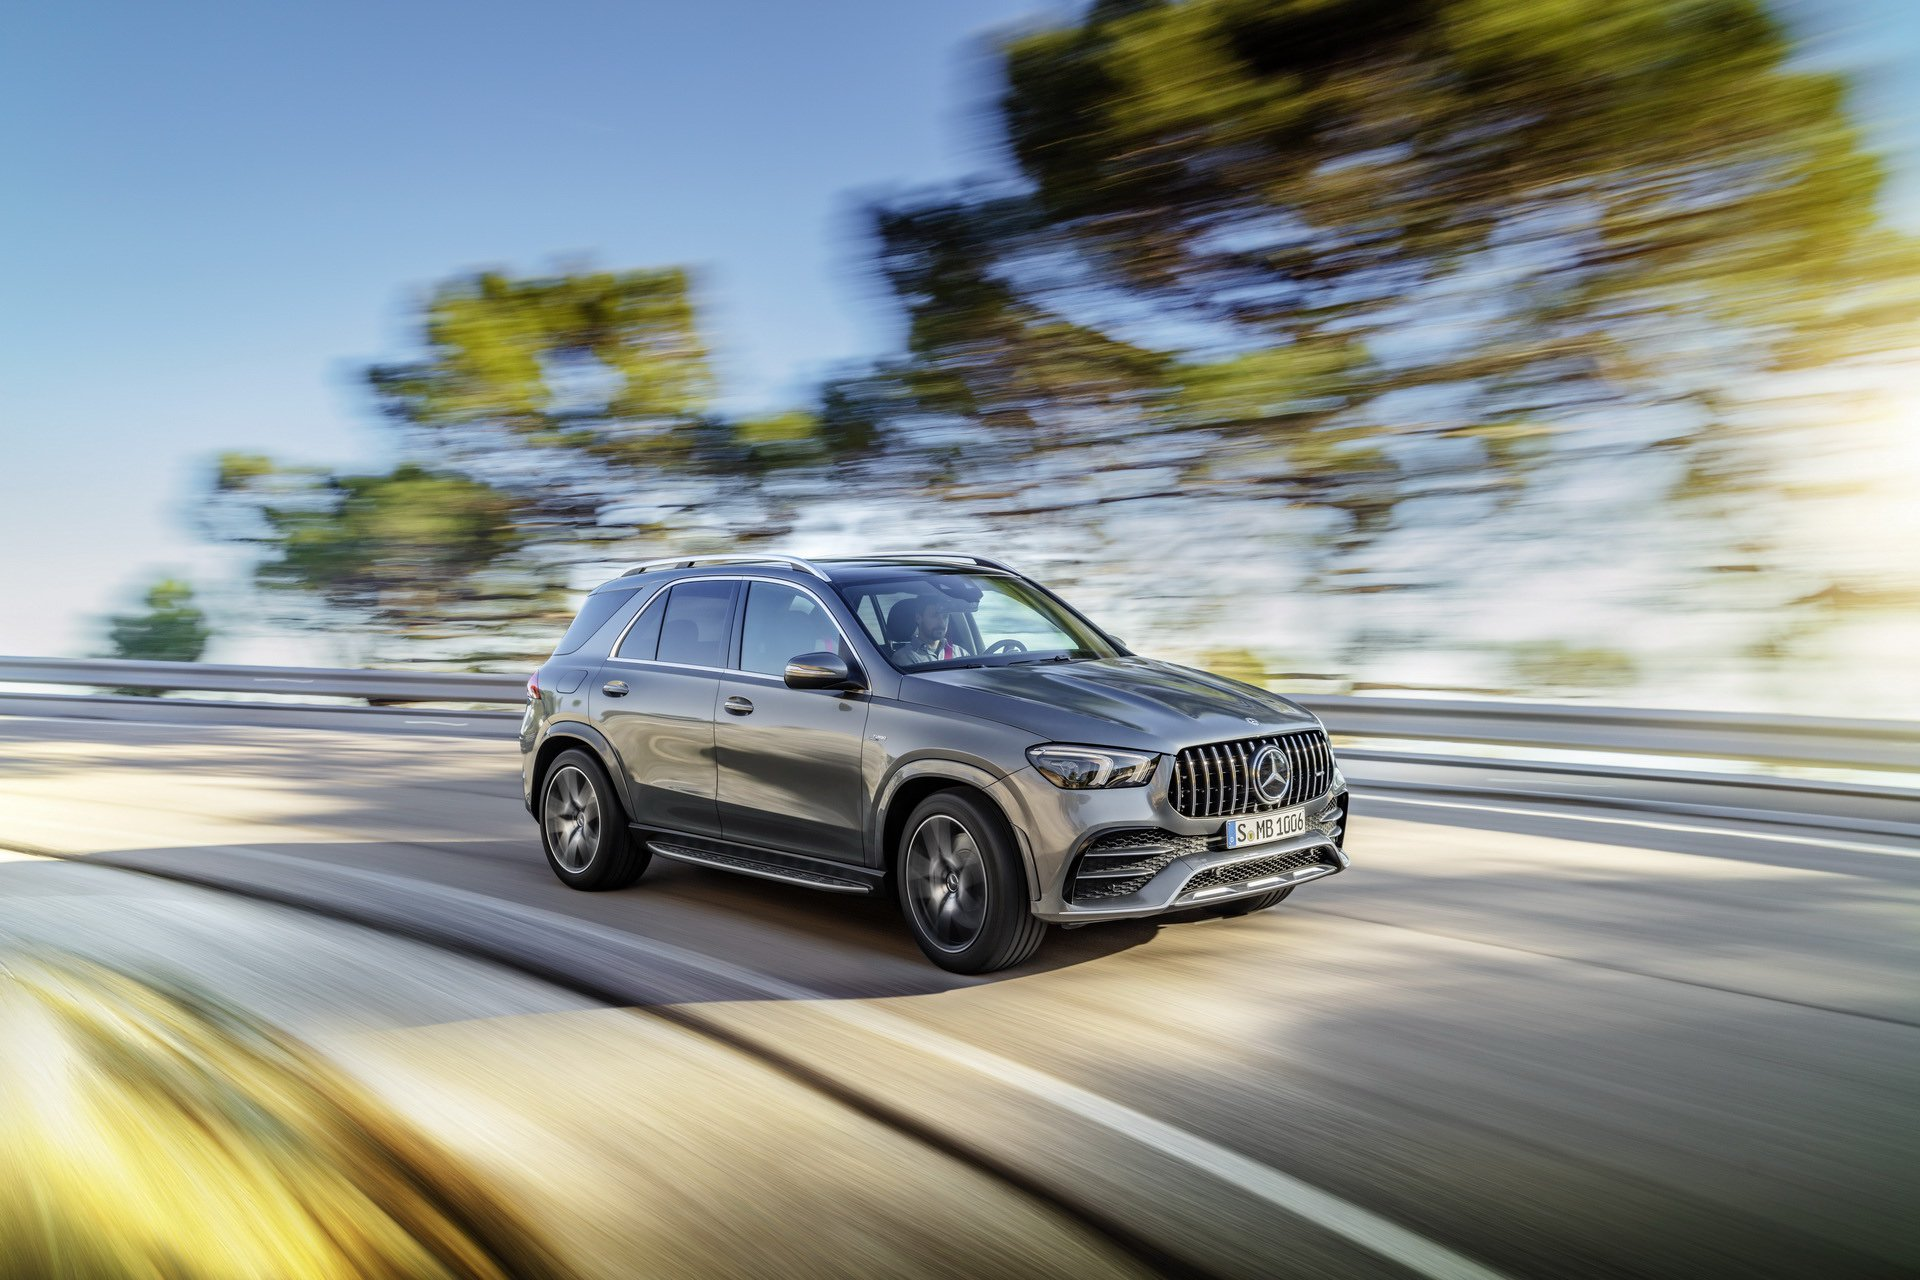 2020 Mercedes-AMG GLE 53 4MATIC+ (Color: Selenite Grey) Front Three-Quarter Wallpapers (1)